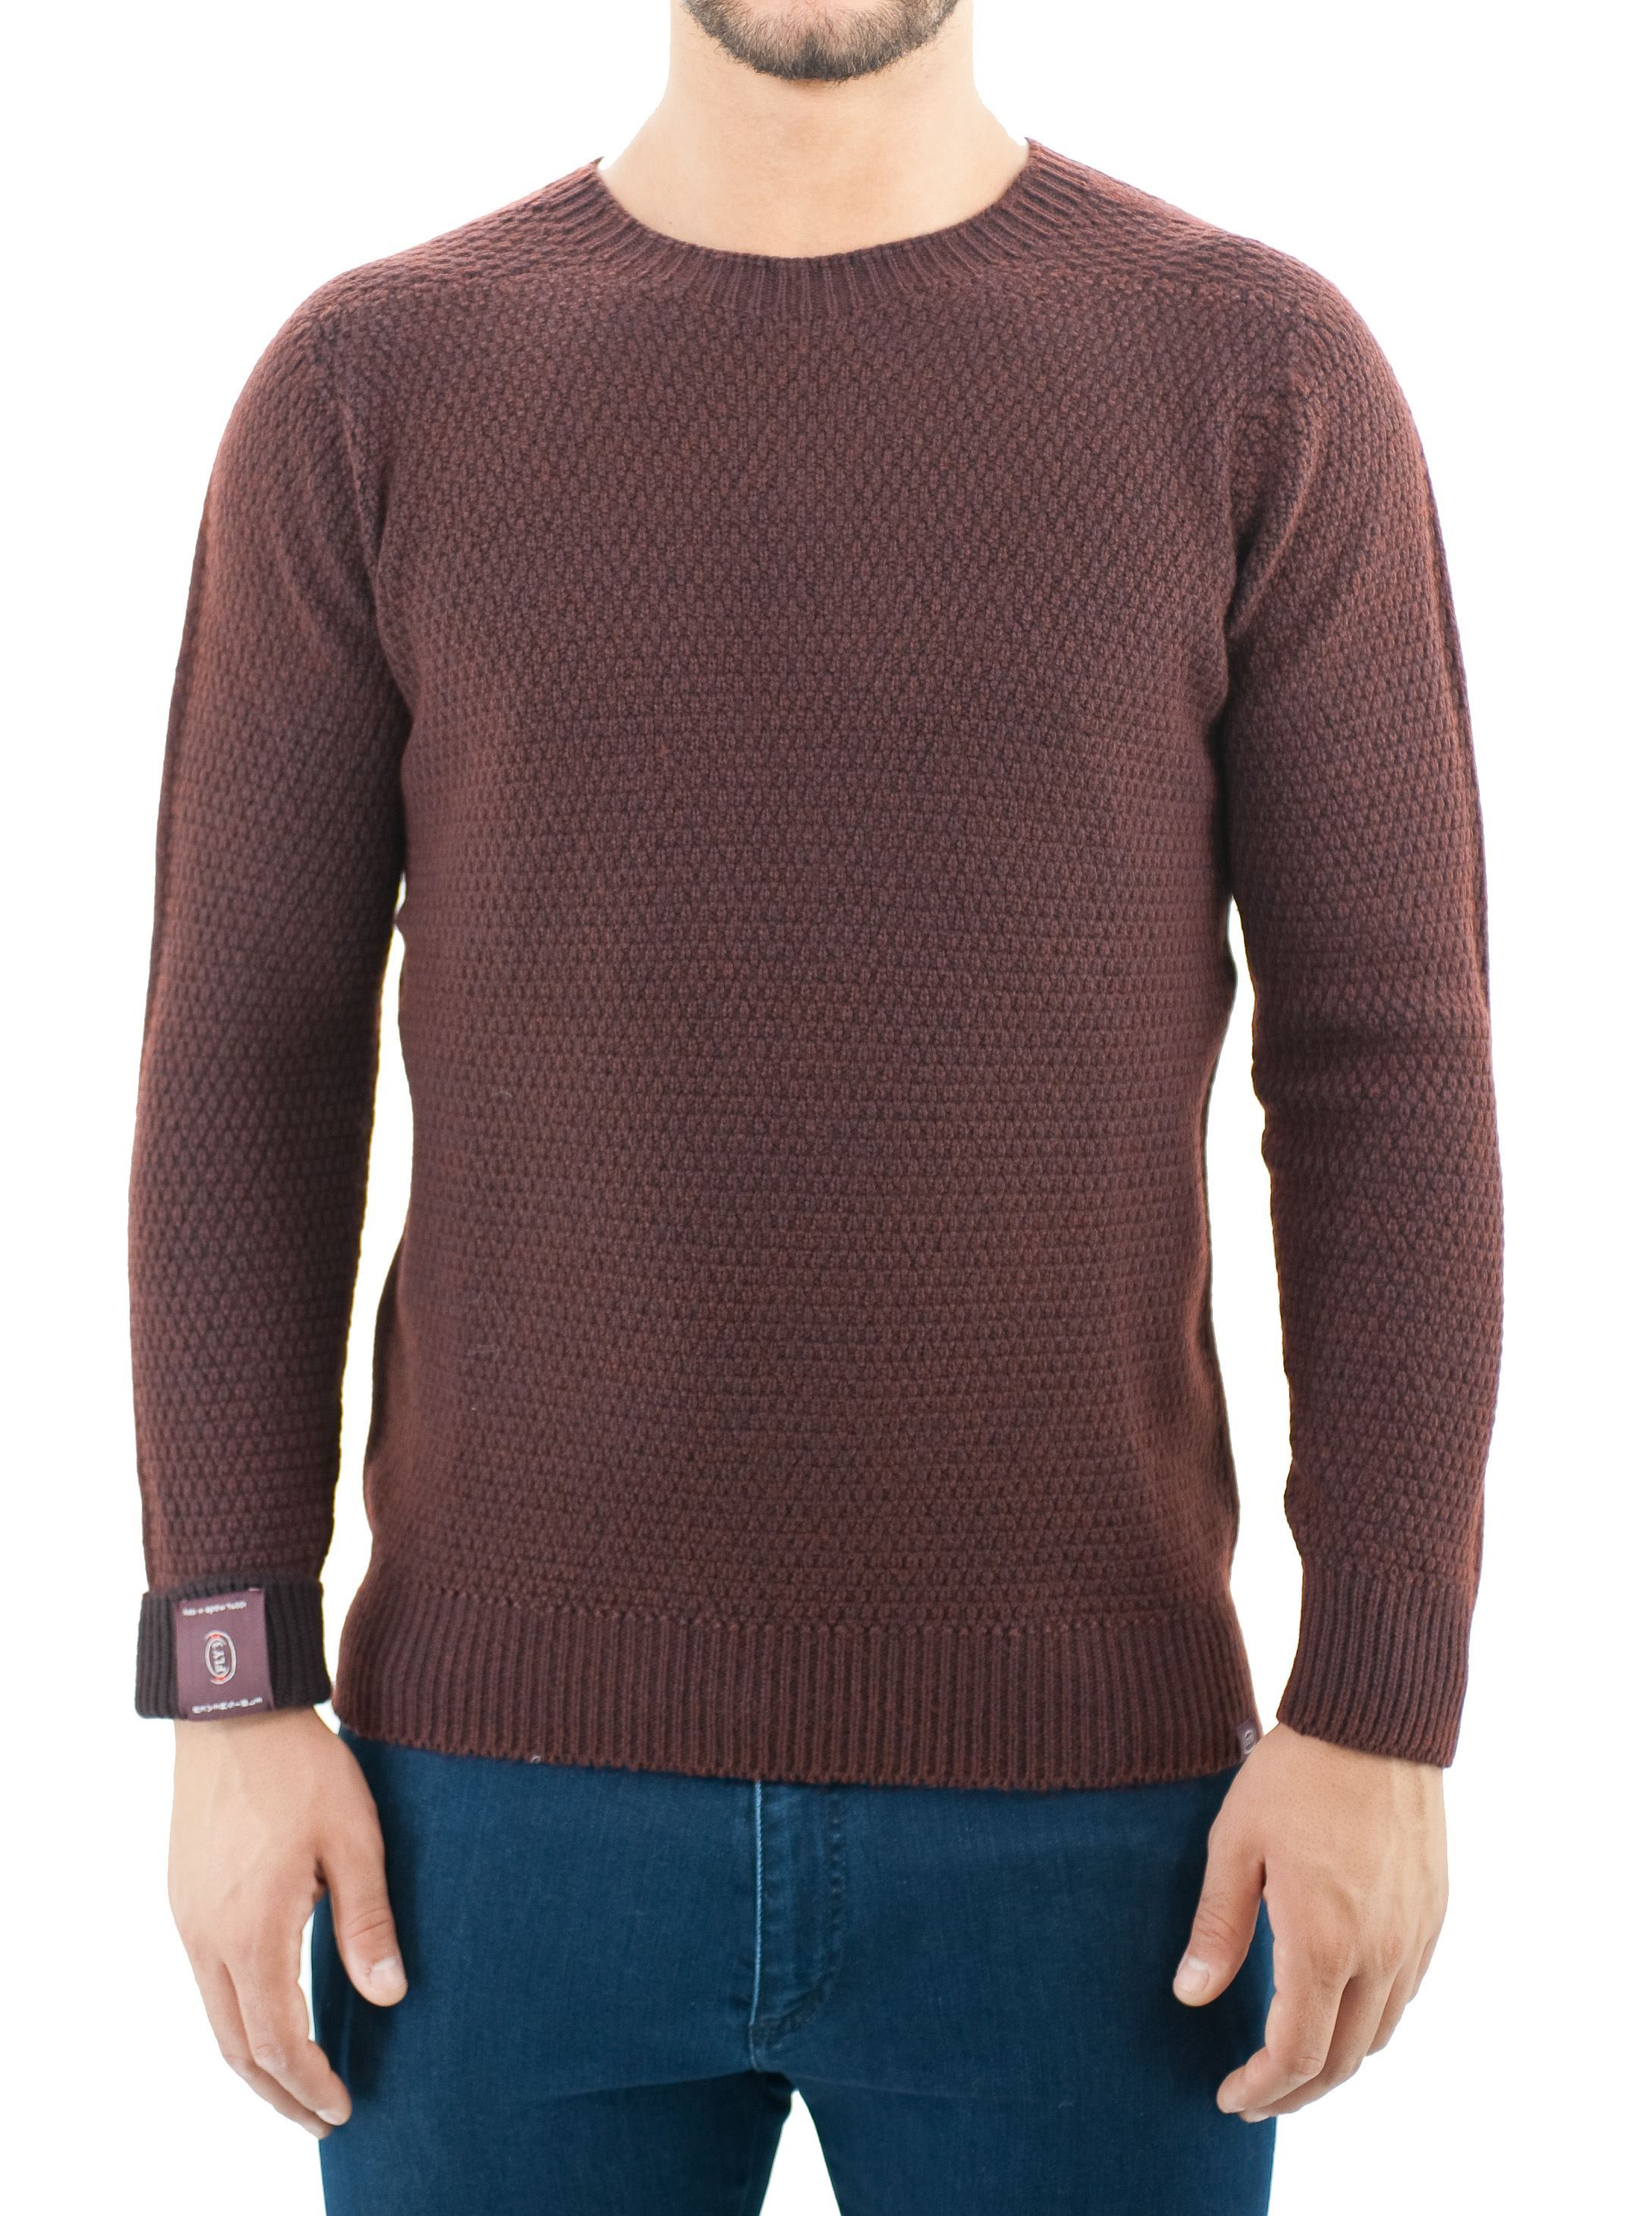 Picture of Wool crewneck  moss stitch